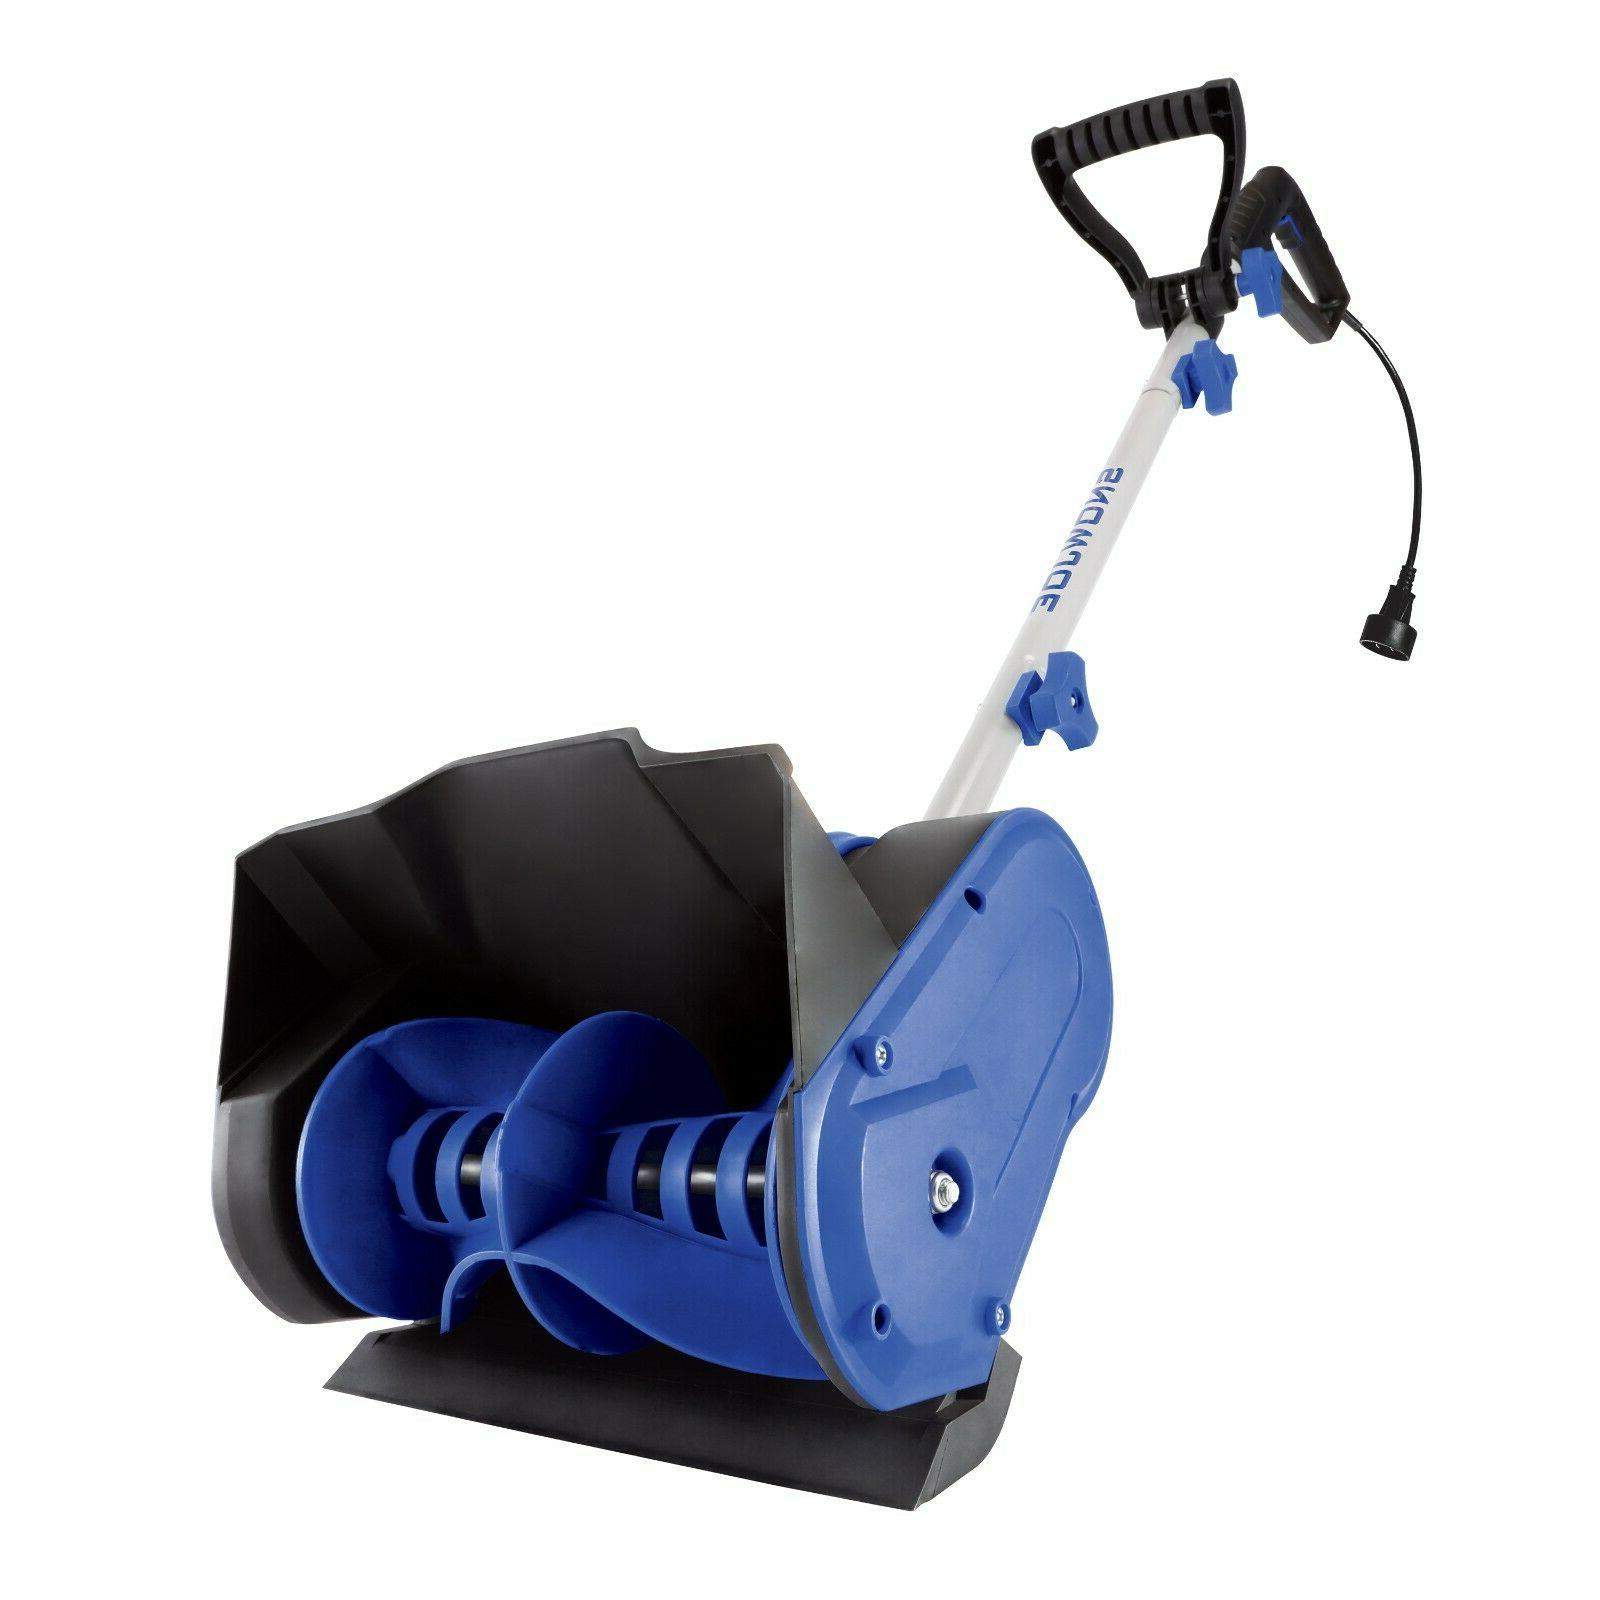 Electric Snow Shovel Blower Plow Inch Amp Corded Lightweight Blue